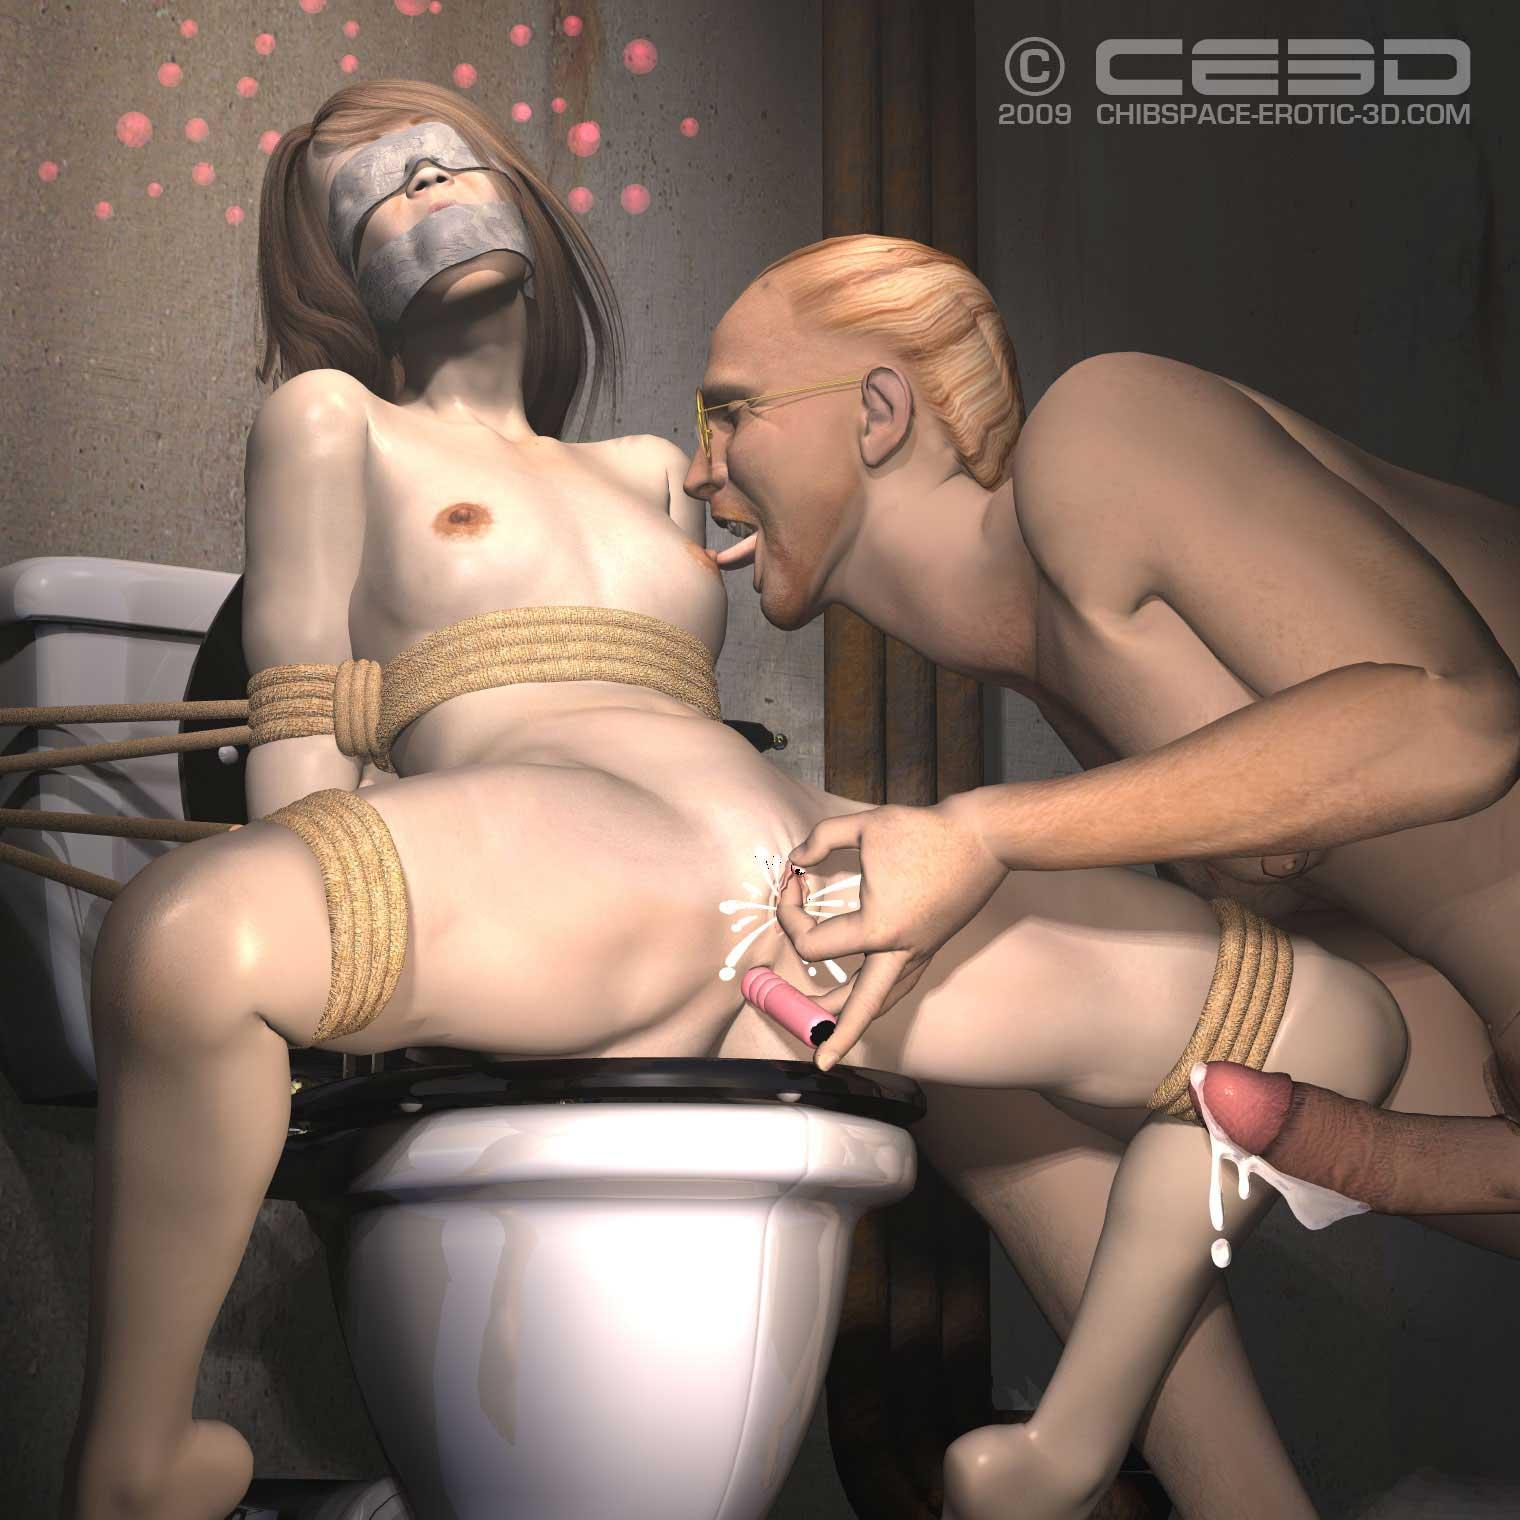 Red F. reccomend Bdsm adult 3d comics